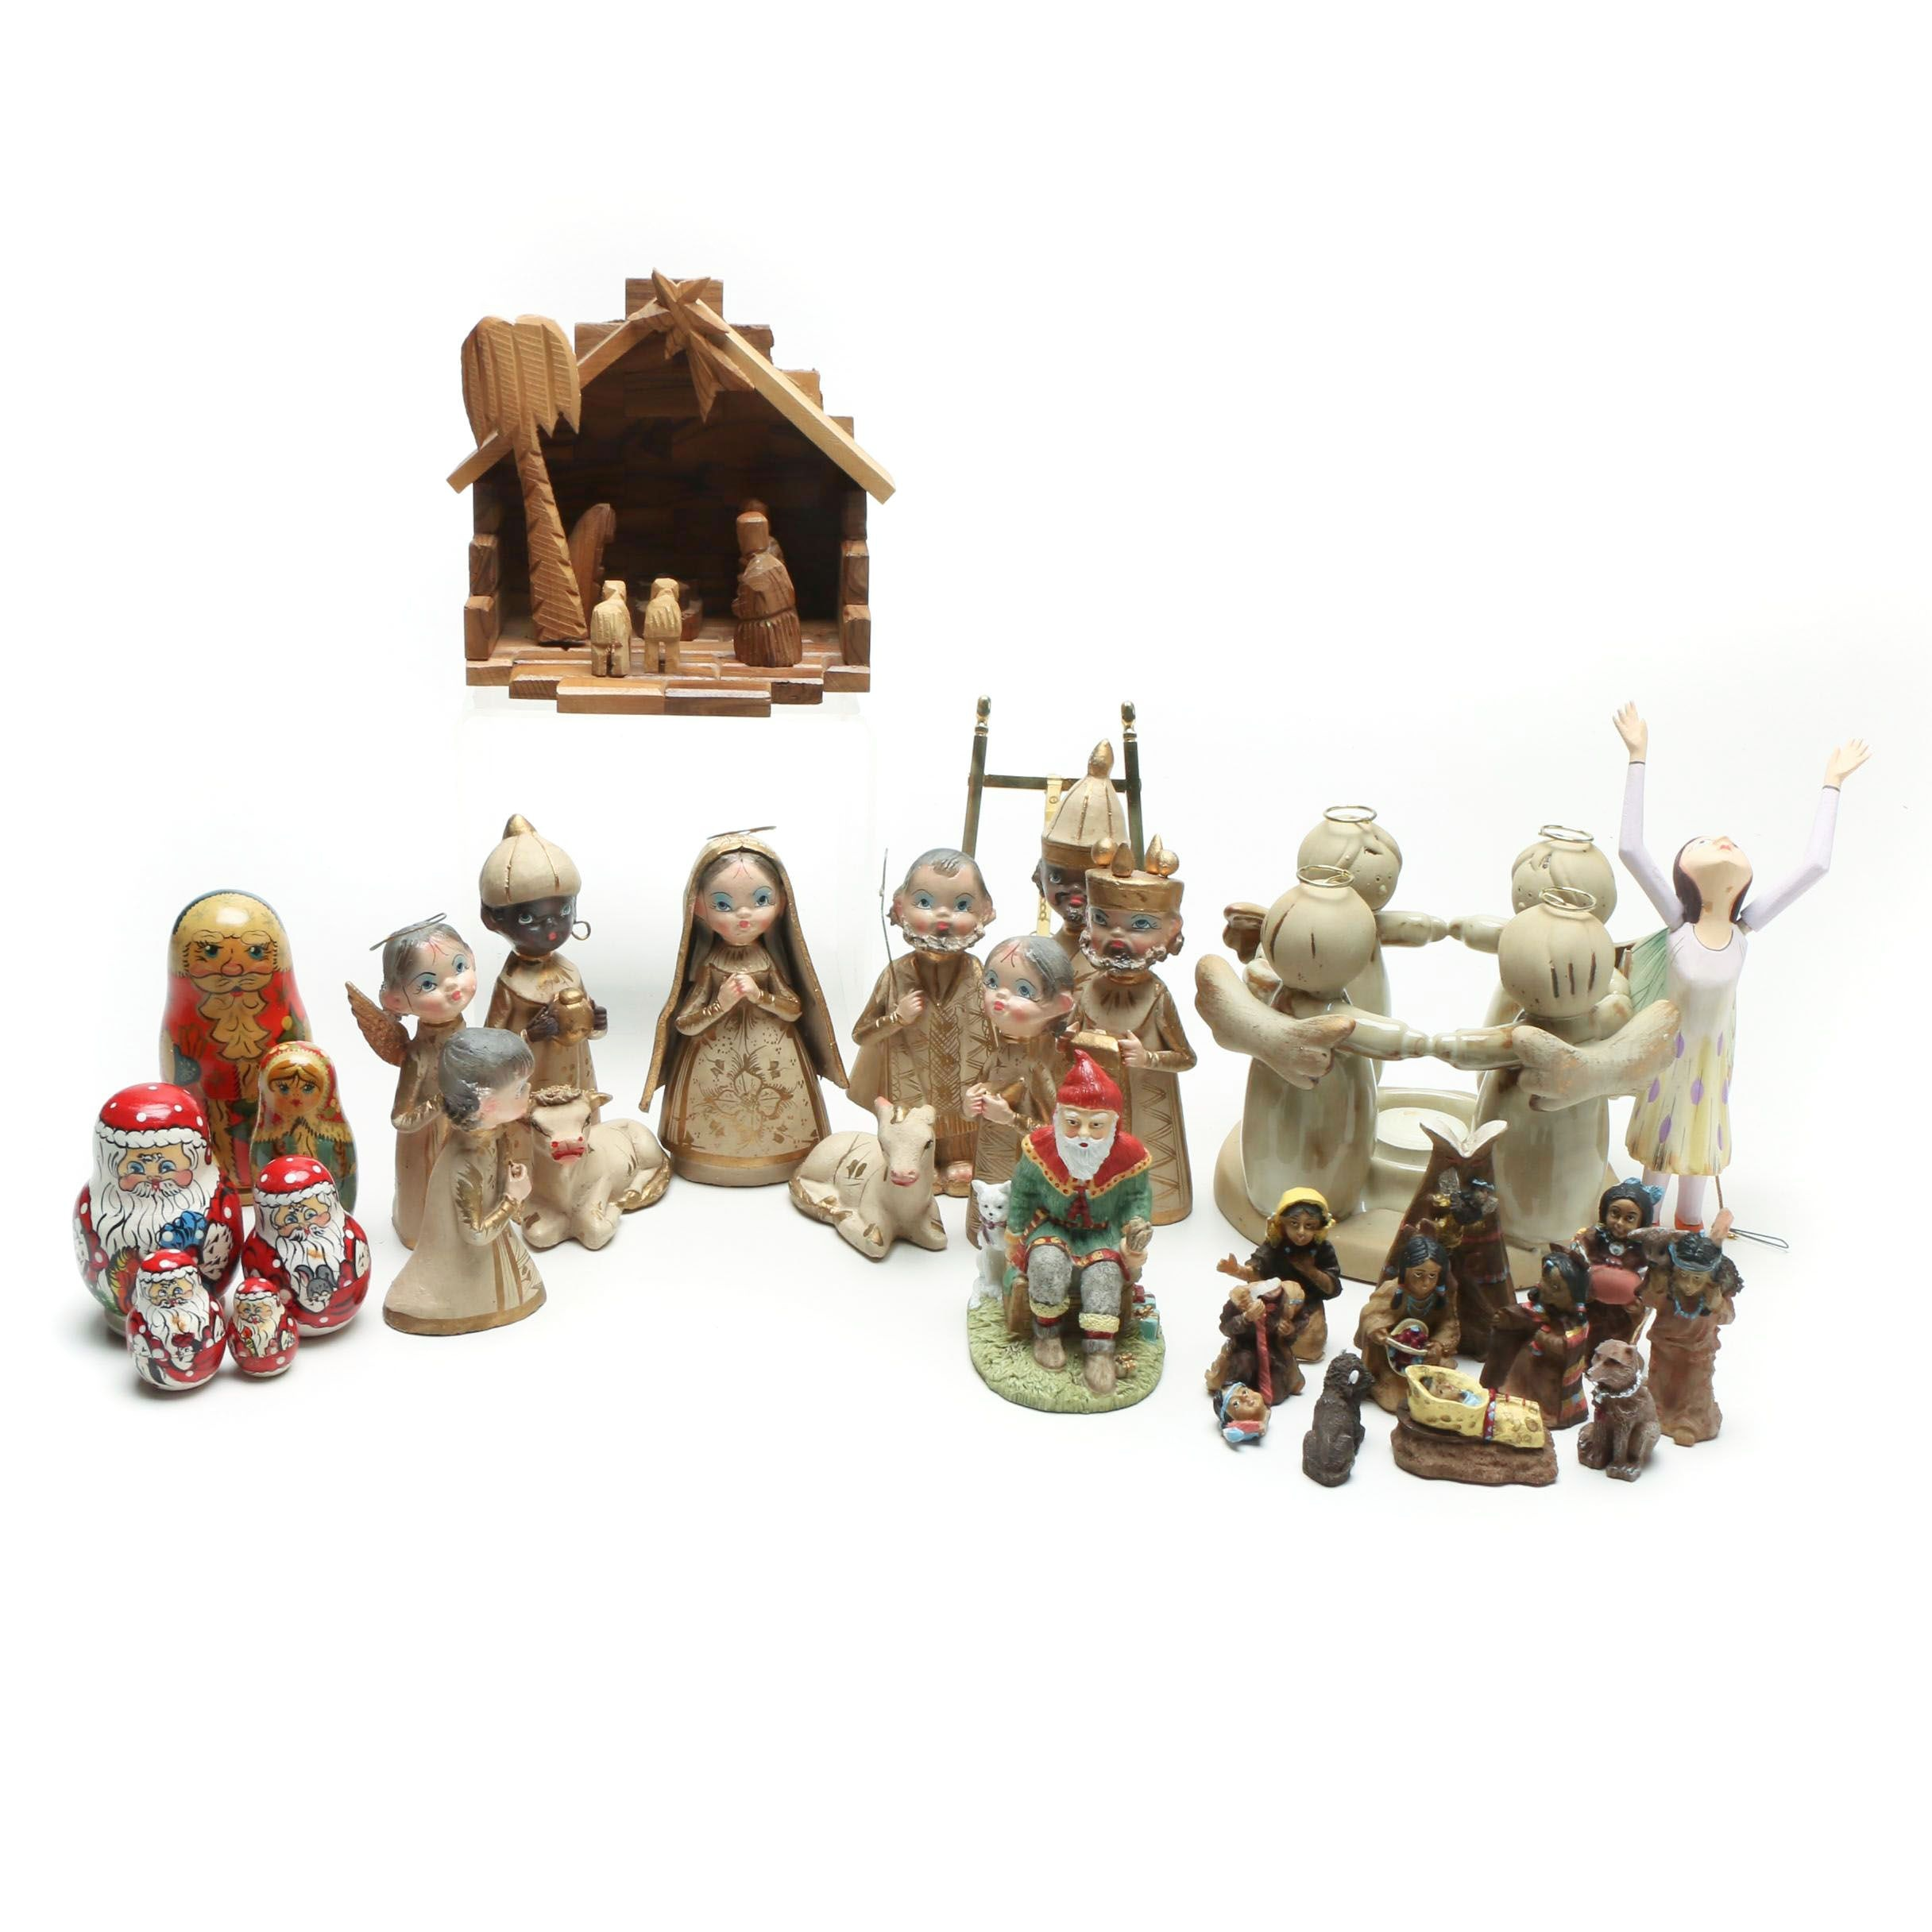 Seasonal Decor and Nativity Ornaments